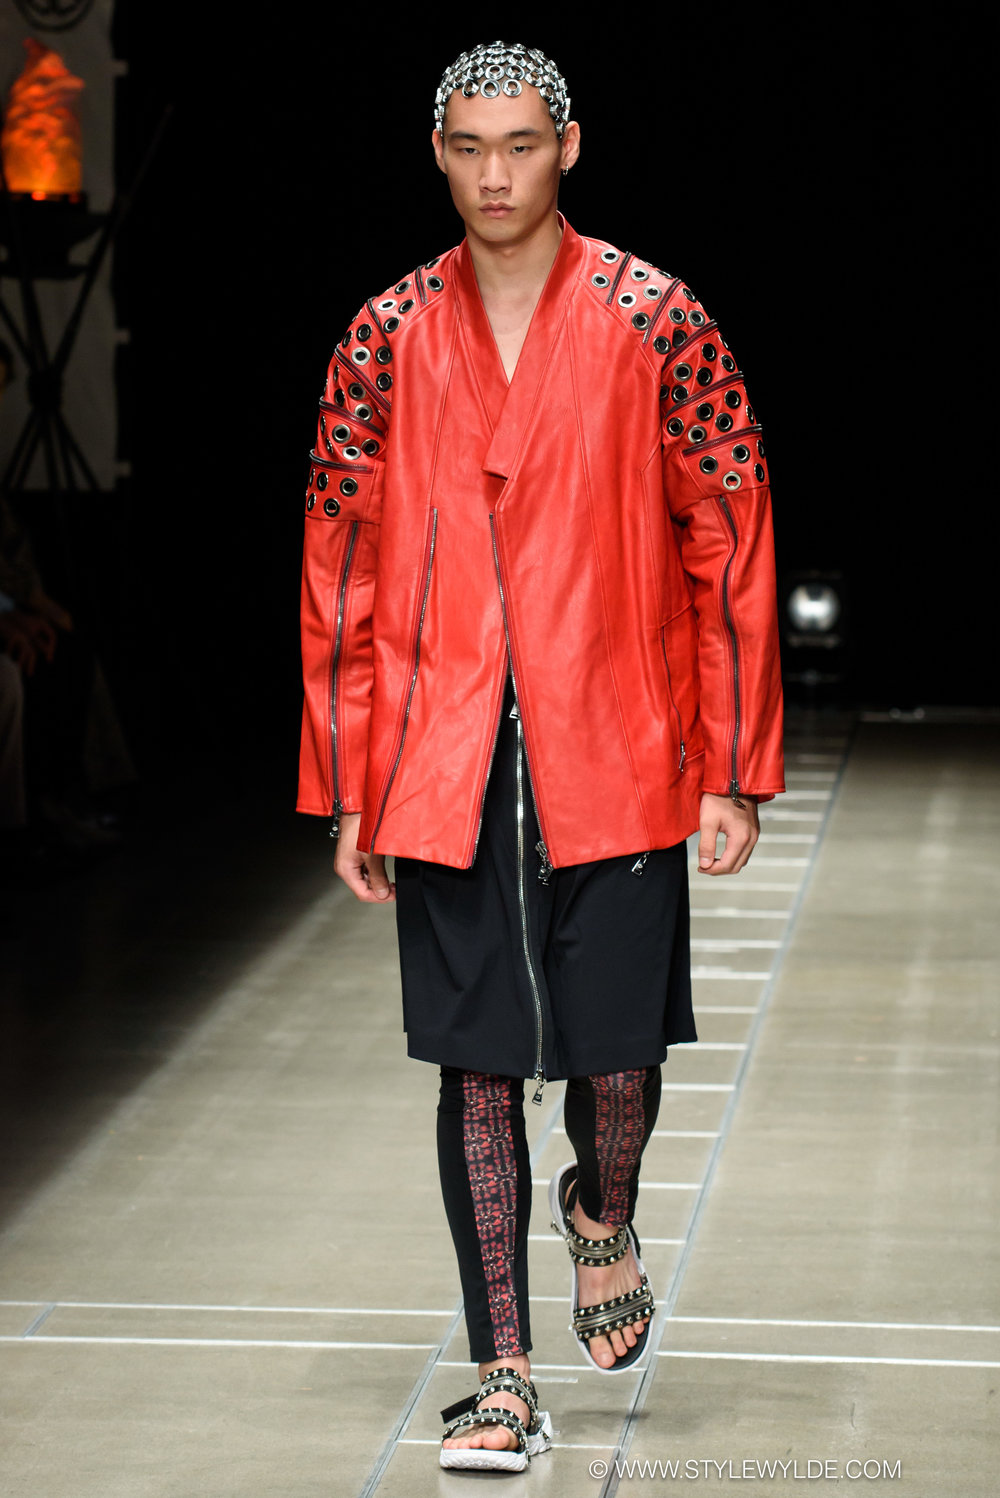 stylewylde_acuod_by_chanu_SS18_runway-1.jpg